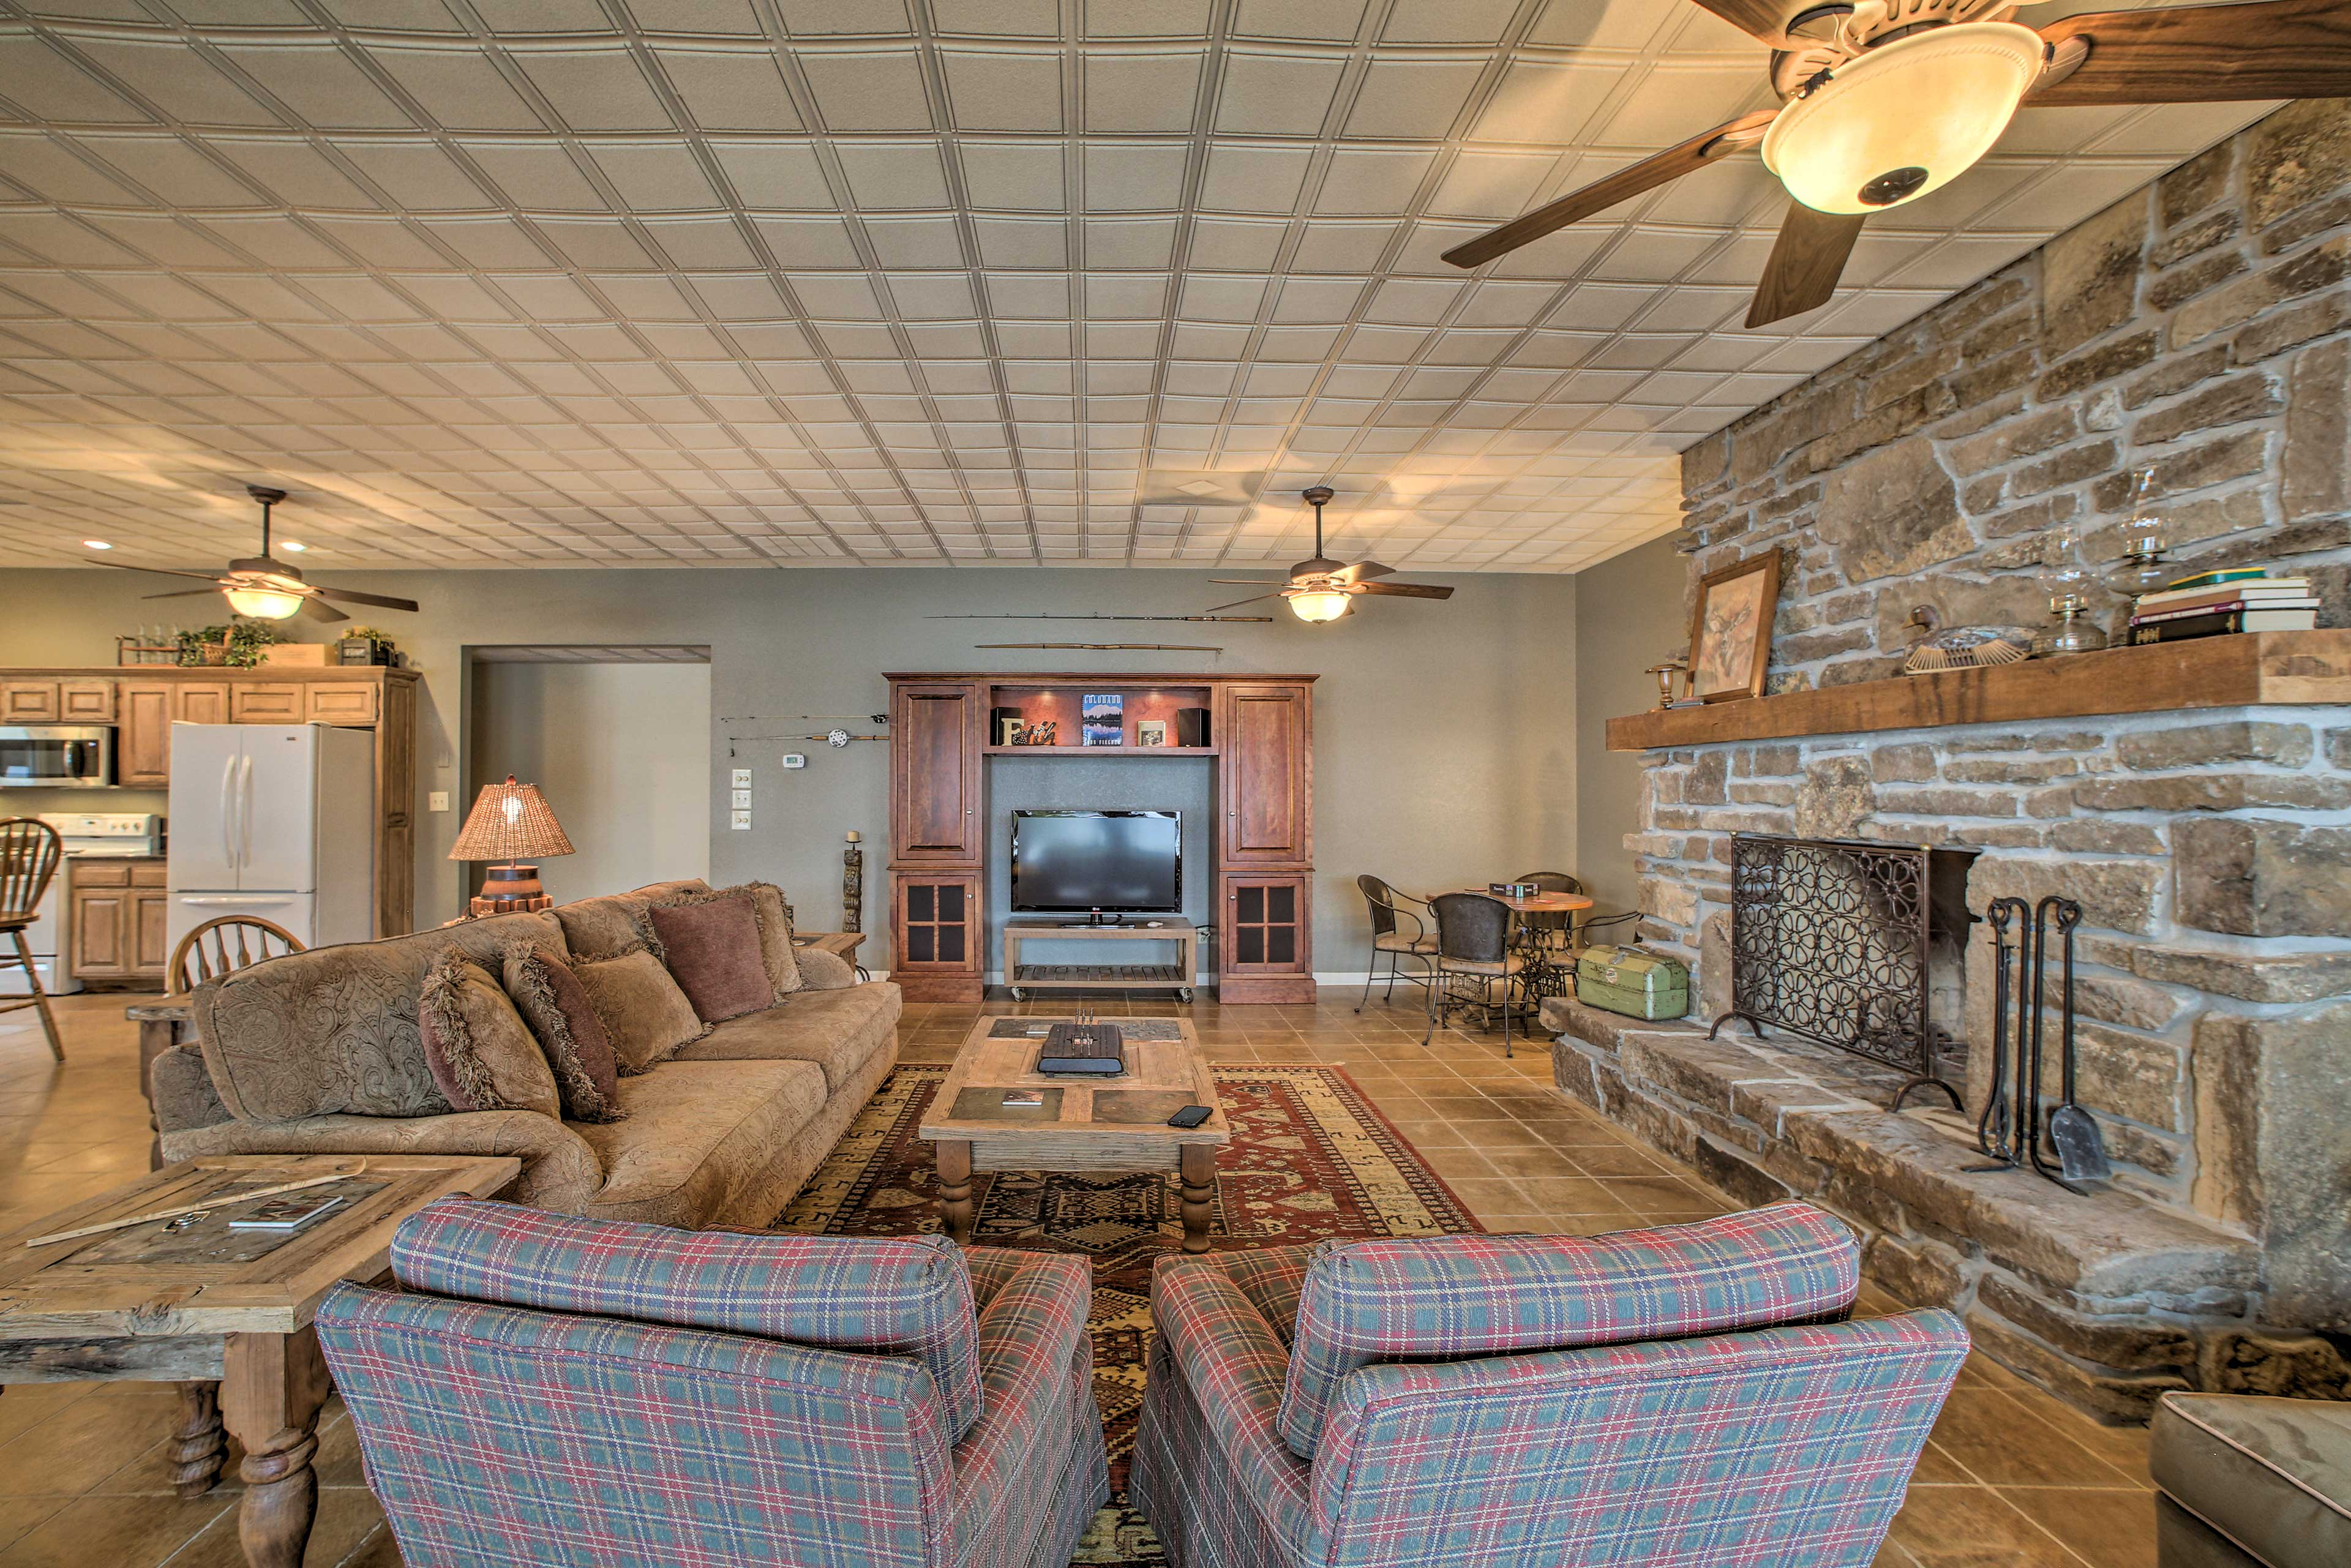 For your comfort, there are several ceiling fans throughout this home (as well as A/C).